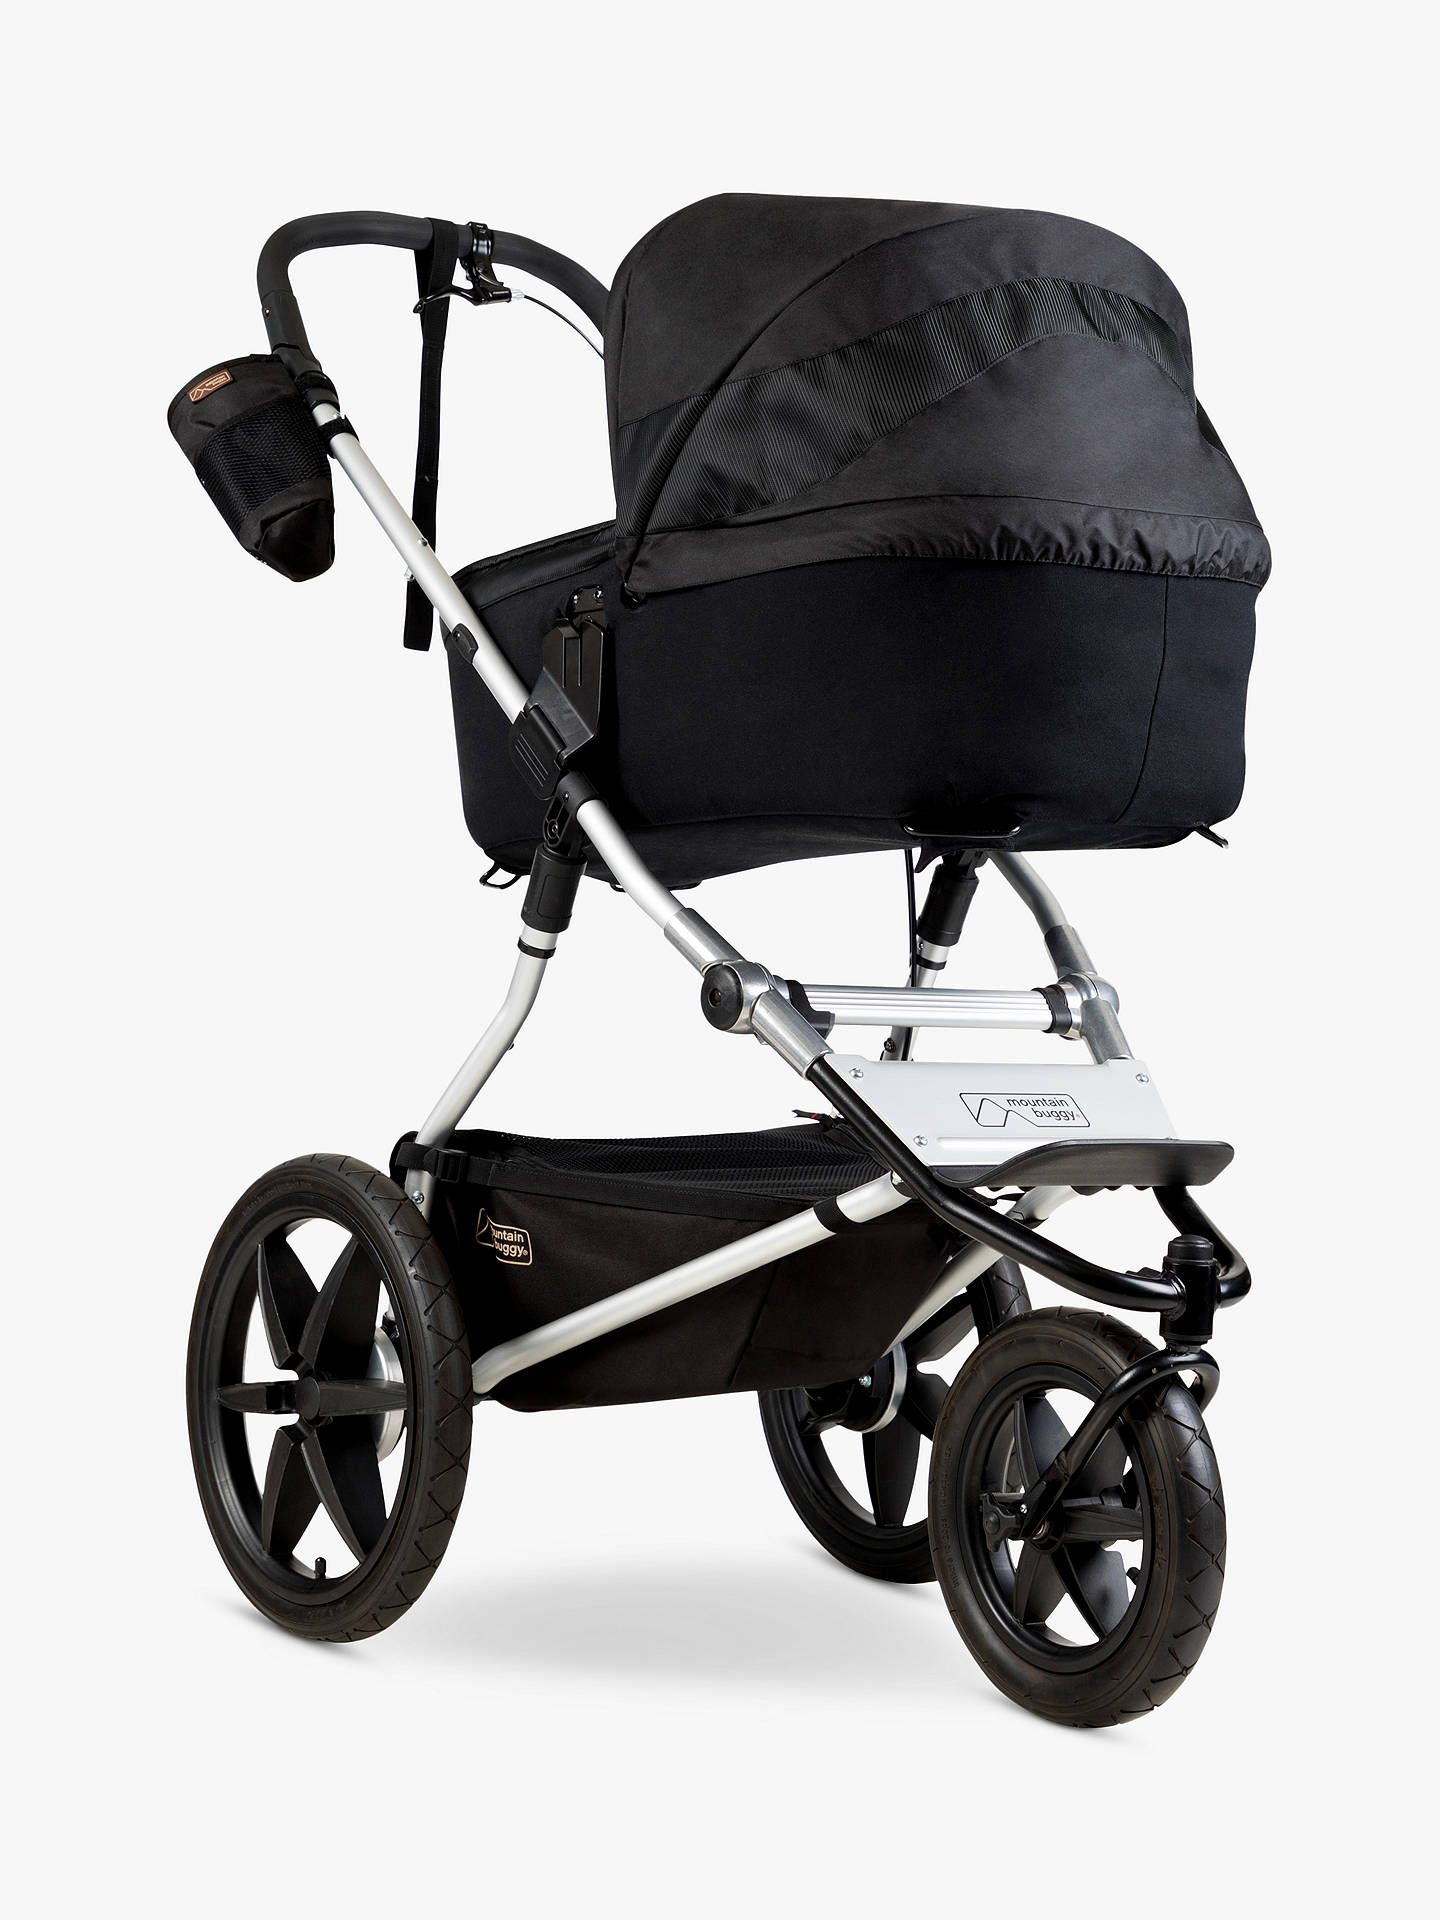 Mountain Buggy Carrycot+ for Terrain, Onyx in 2020